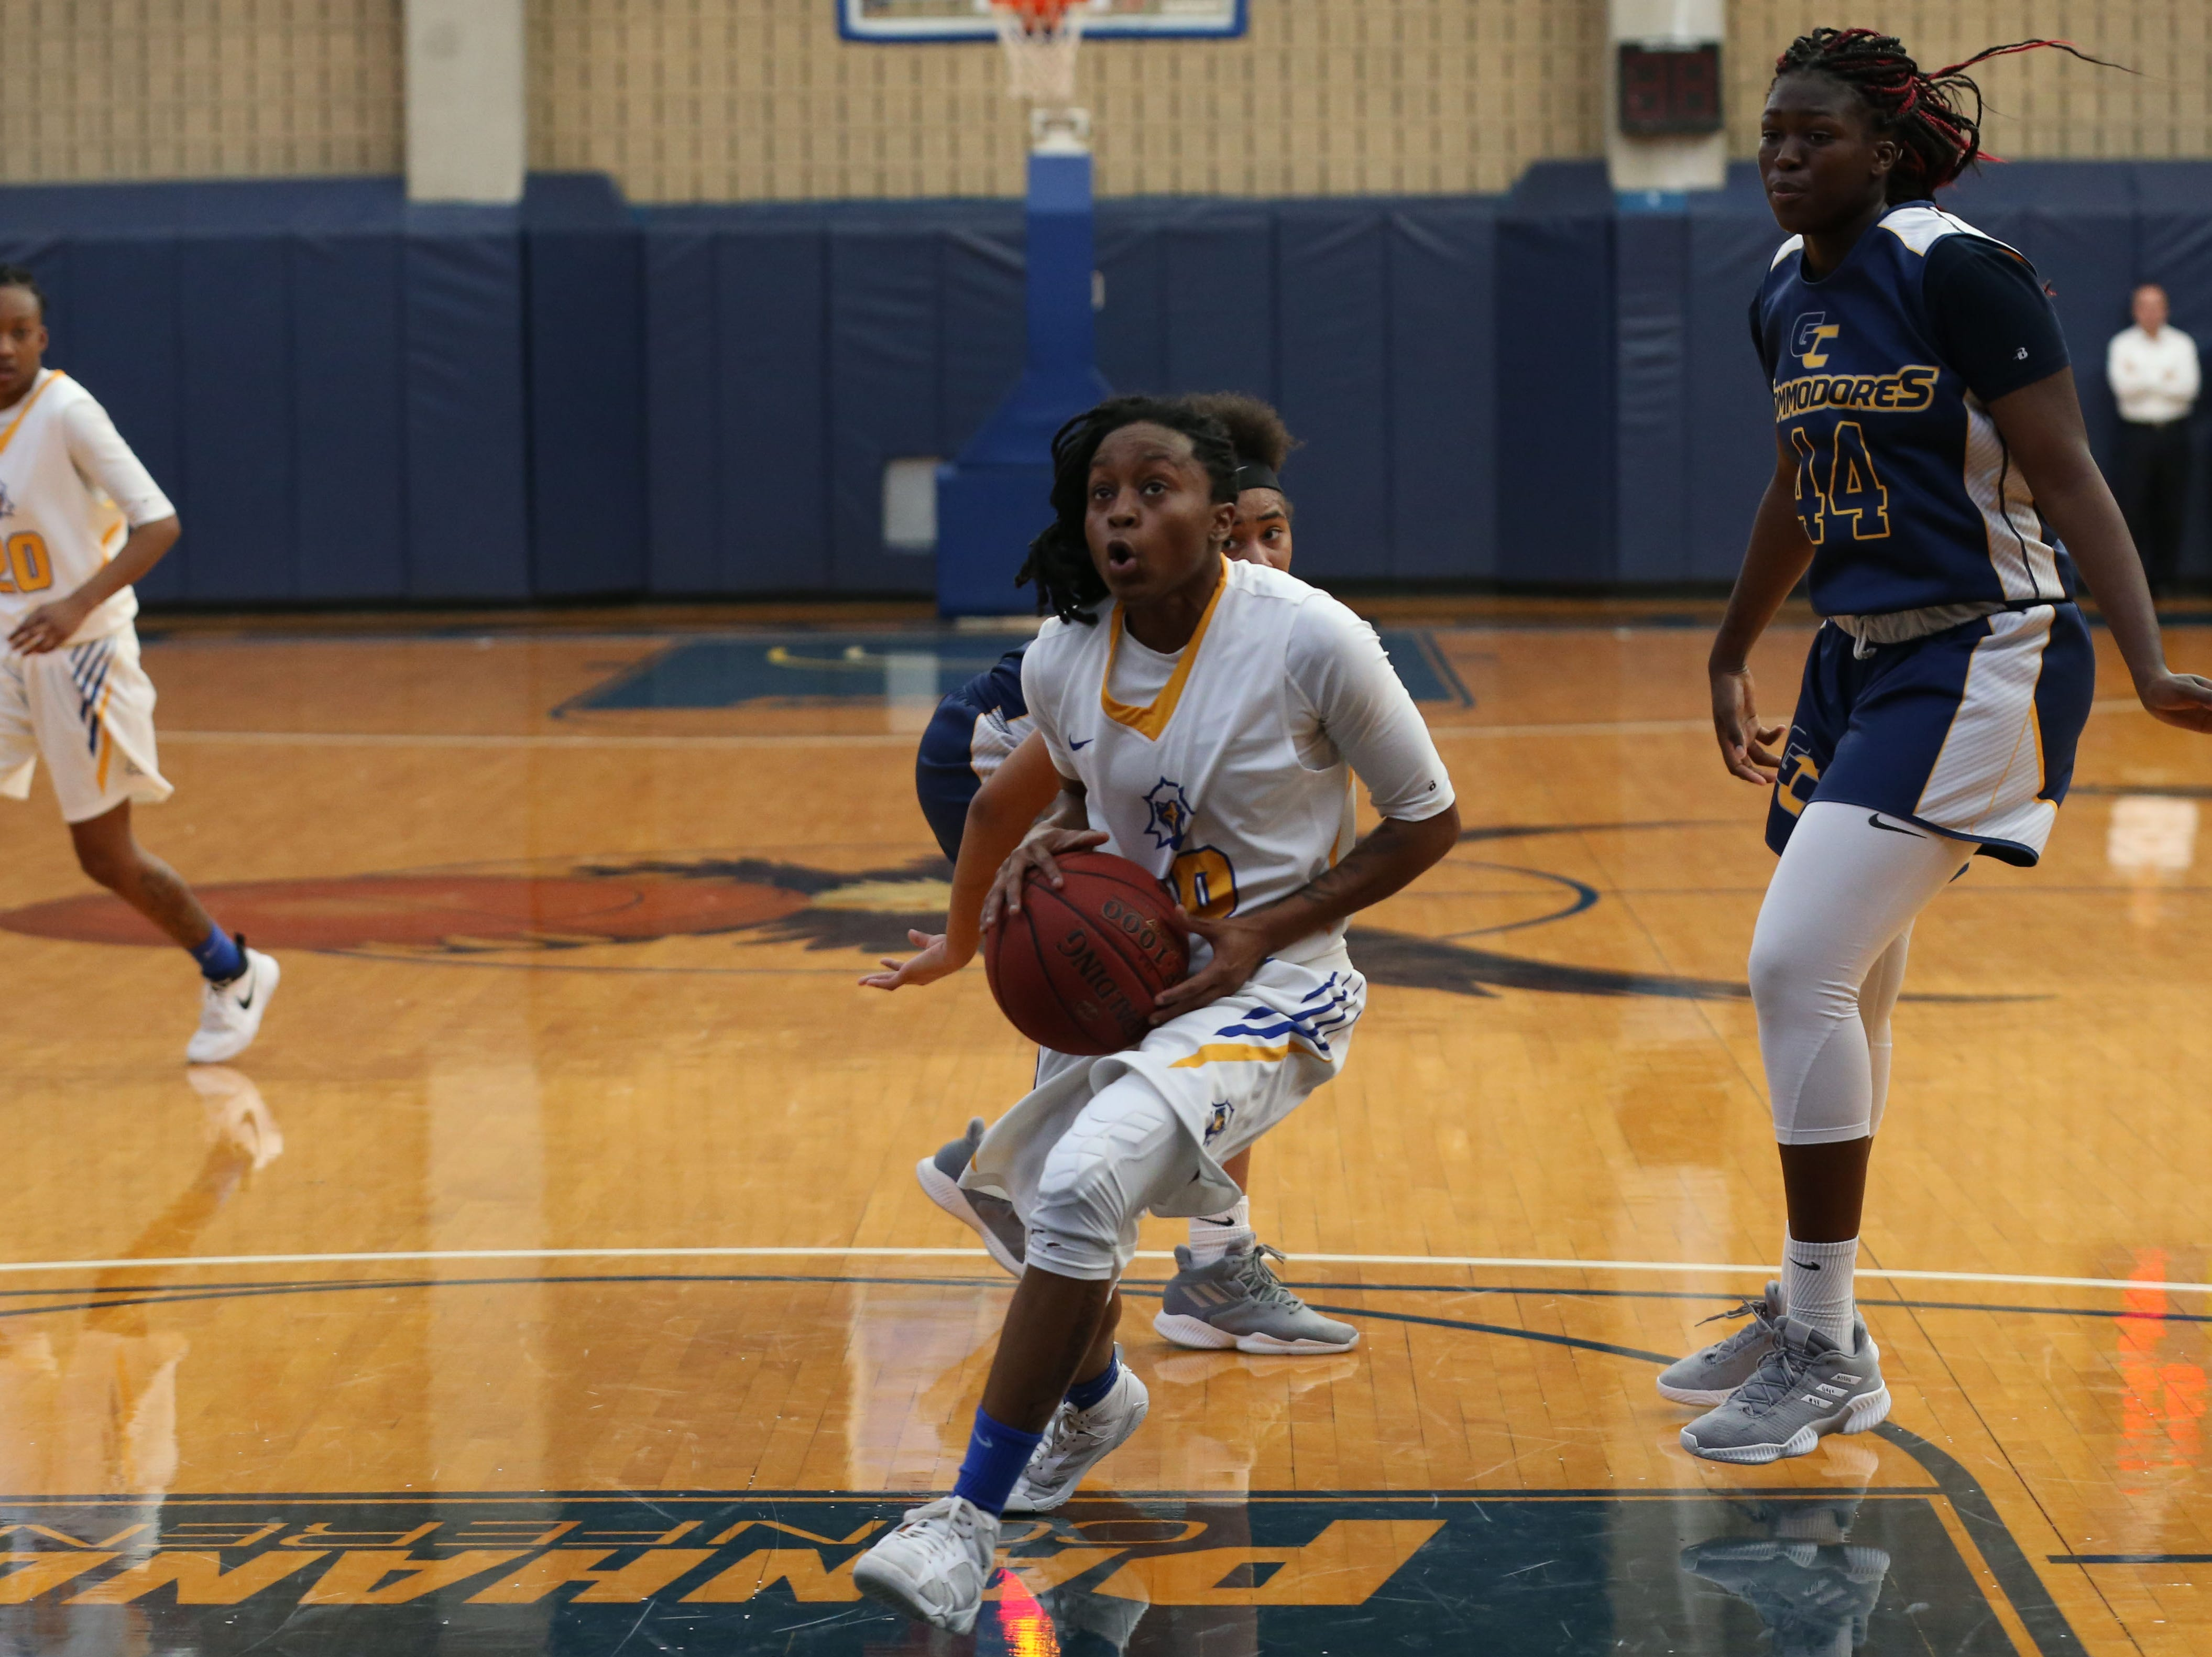 Tallahassee Community College Eagles guard Tameria Johnson (10) drives the ball in for a layup. The Tallahassee Community College Eagles host the Gulf Coast State College Commodores in a conference match-up in the Eagledome, Saturday, Jan. 5, 2019.